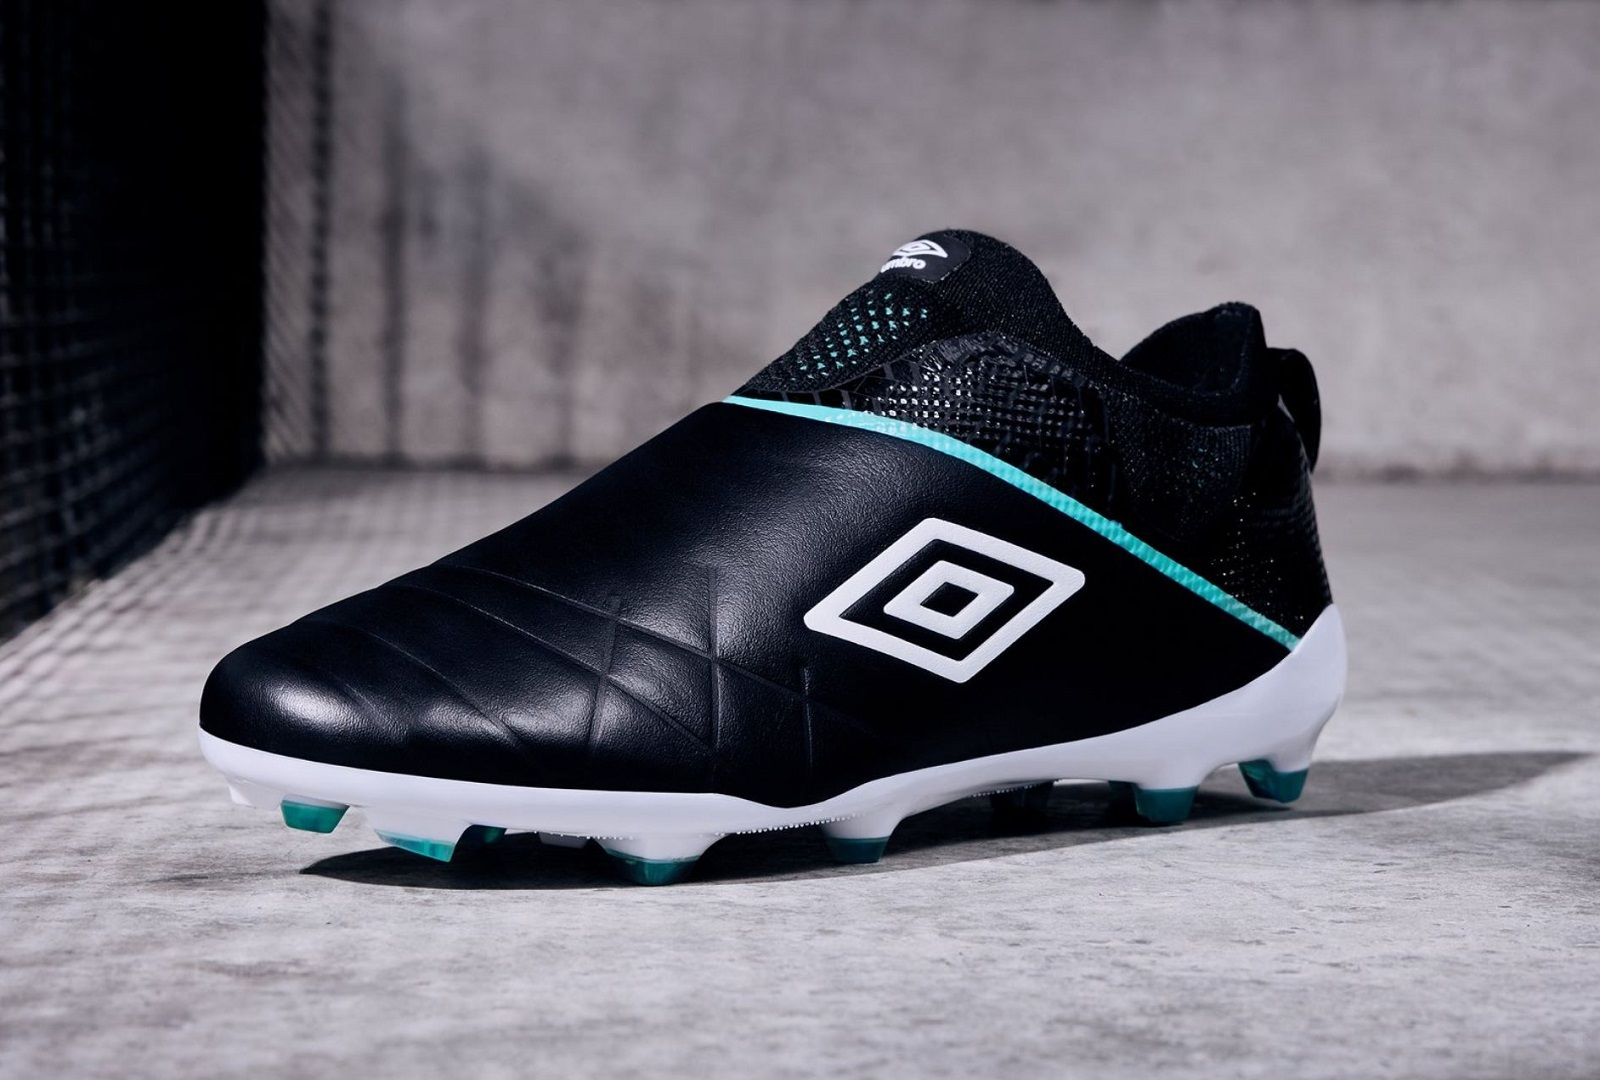 3ff0e9a53 Limited Edition Umbro Medusae 3 Elite Released